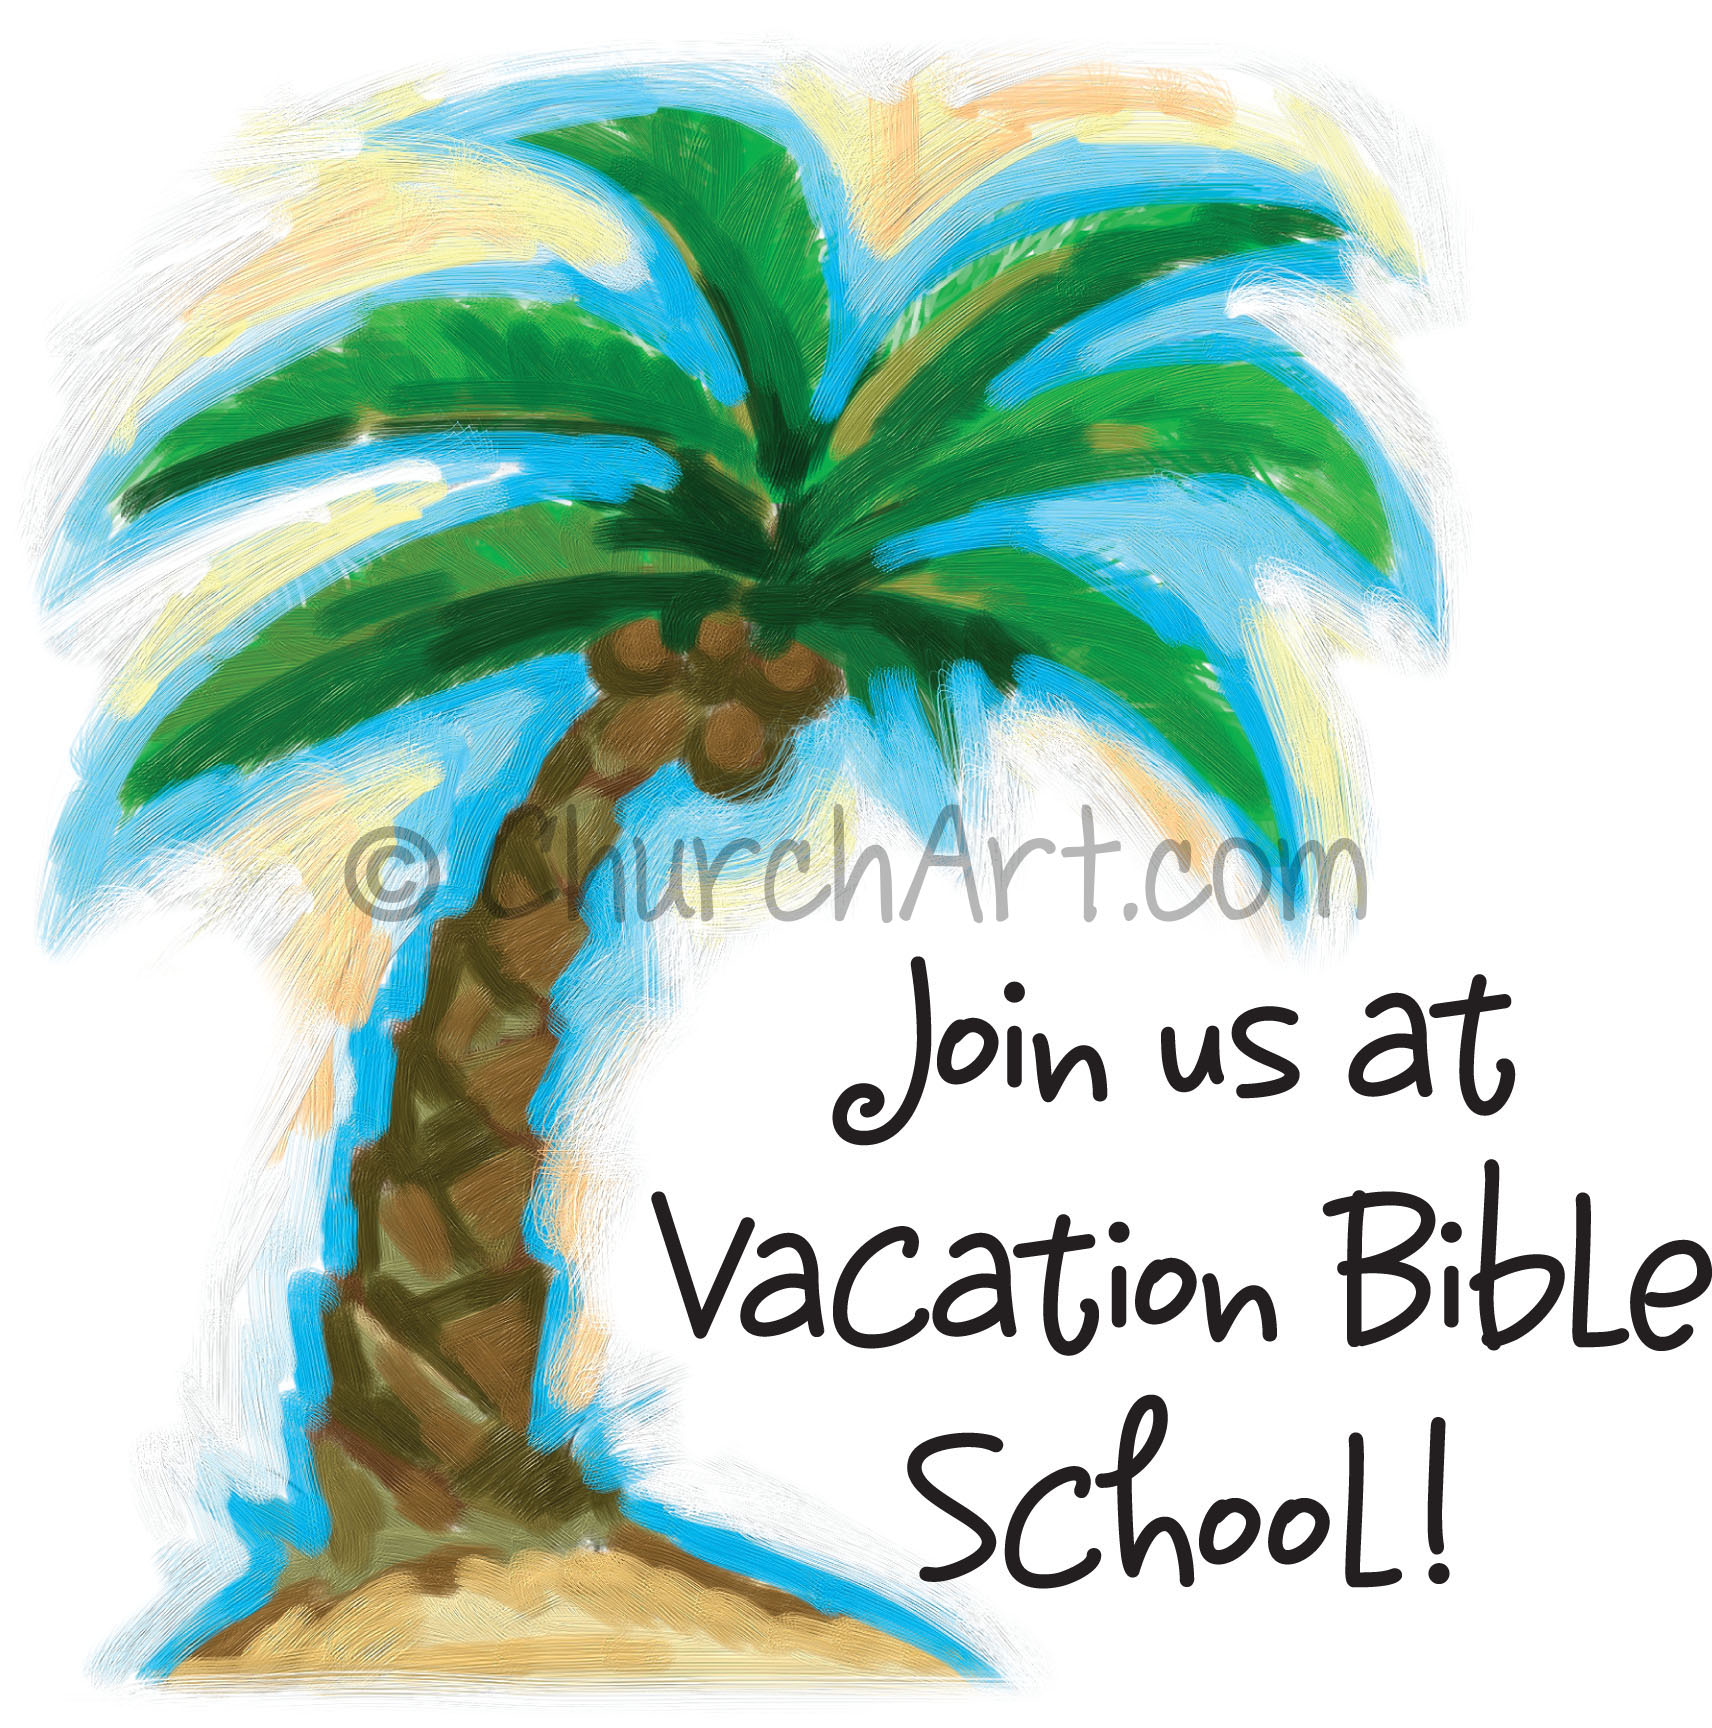 Vacation Bible School Clip-Art with palm tree and JOIN US AT VACATION BIBLE SCHOOL! caption